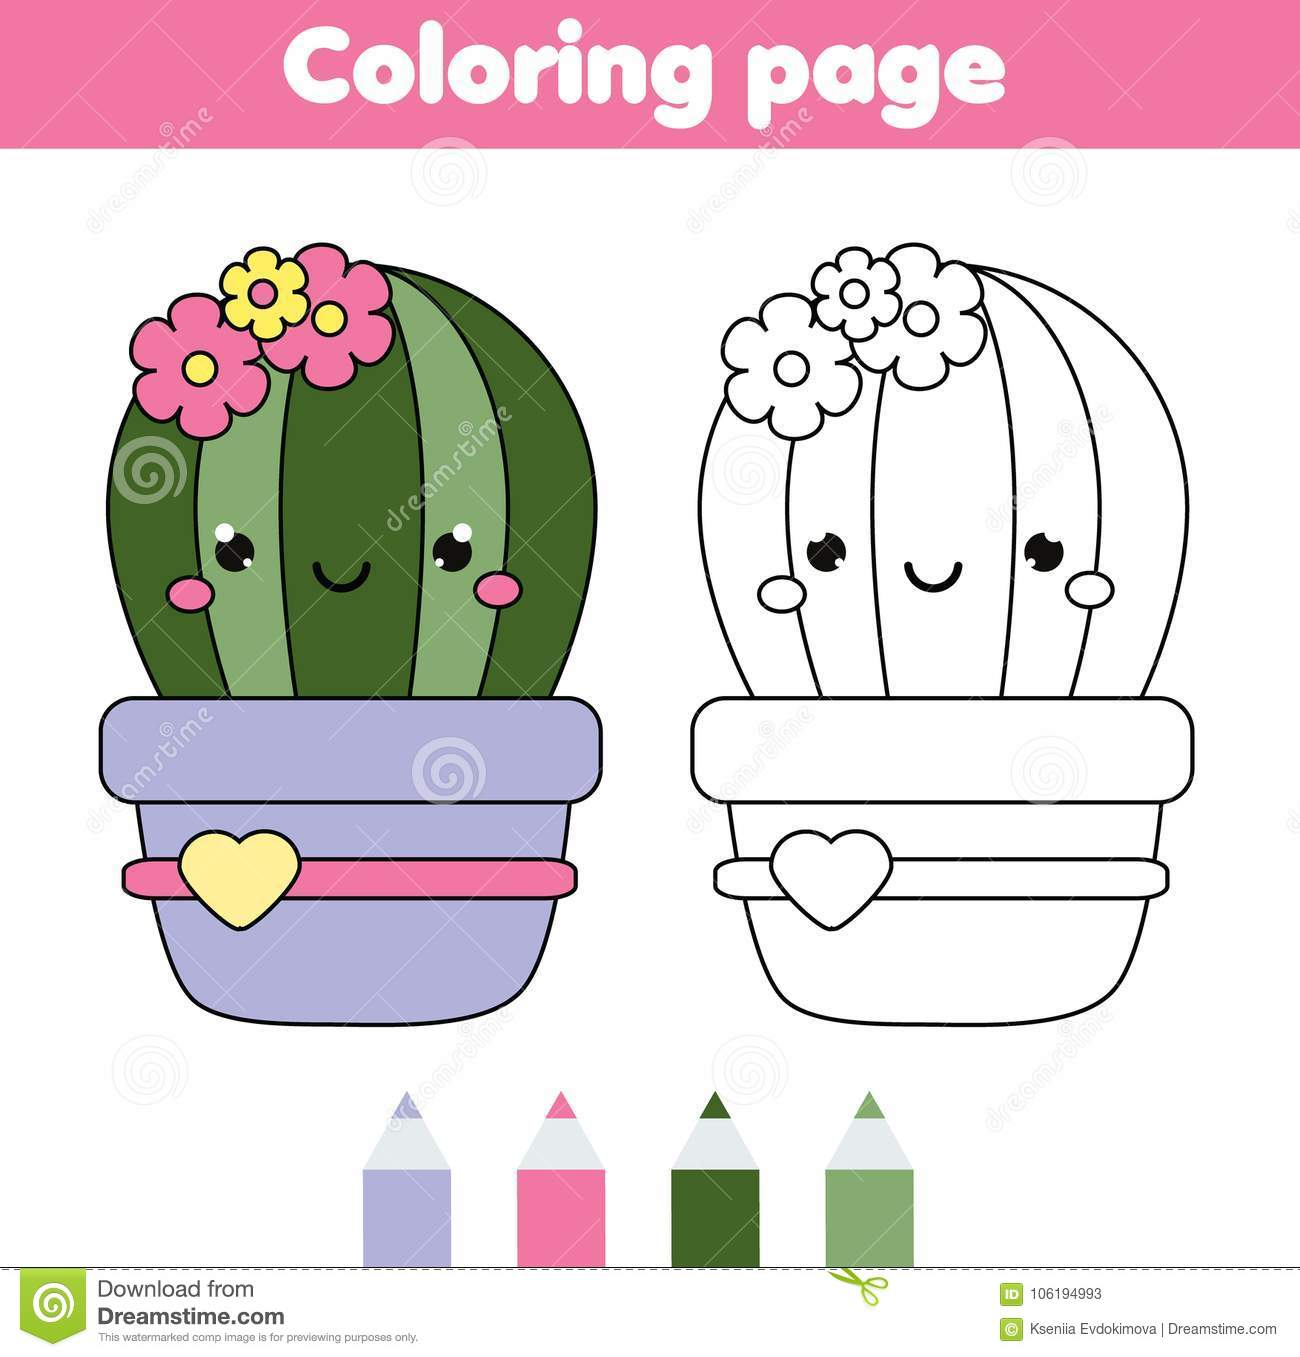 Coloring Page With Cute Cactus Drawing Kids Game Printable Activity Stock Vector